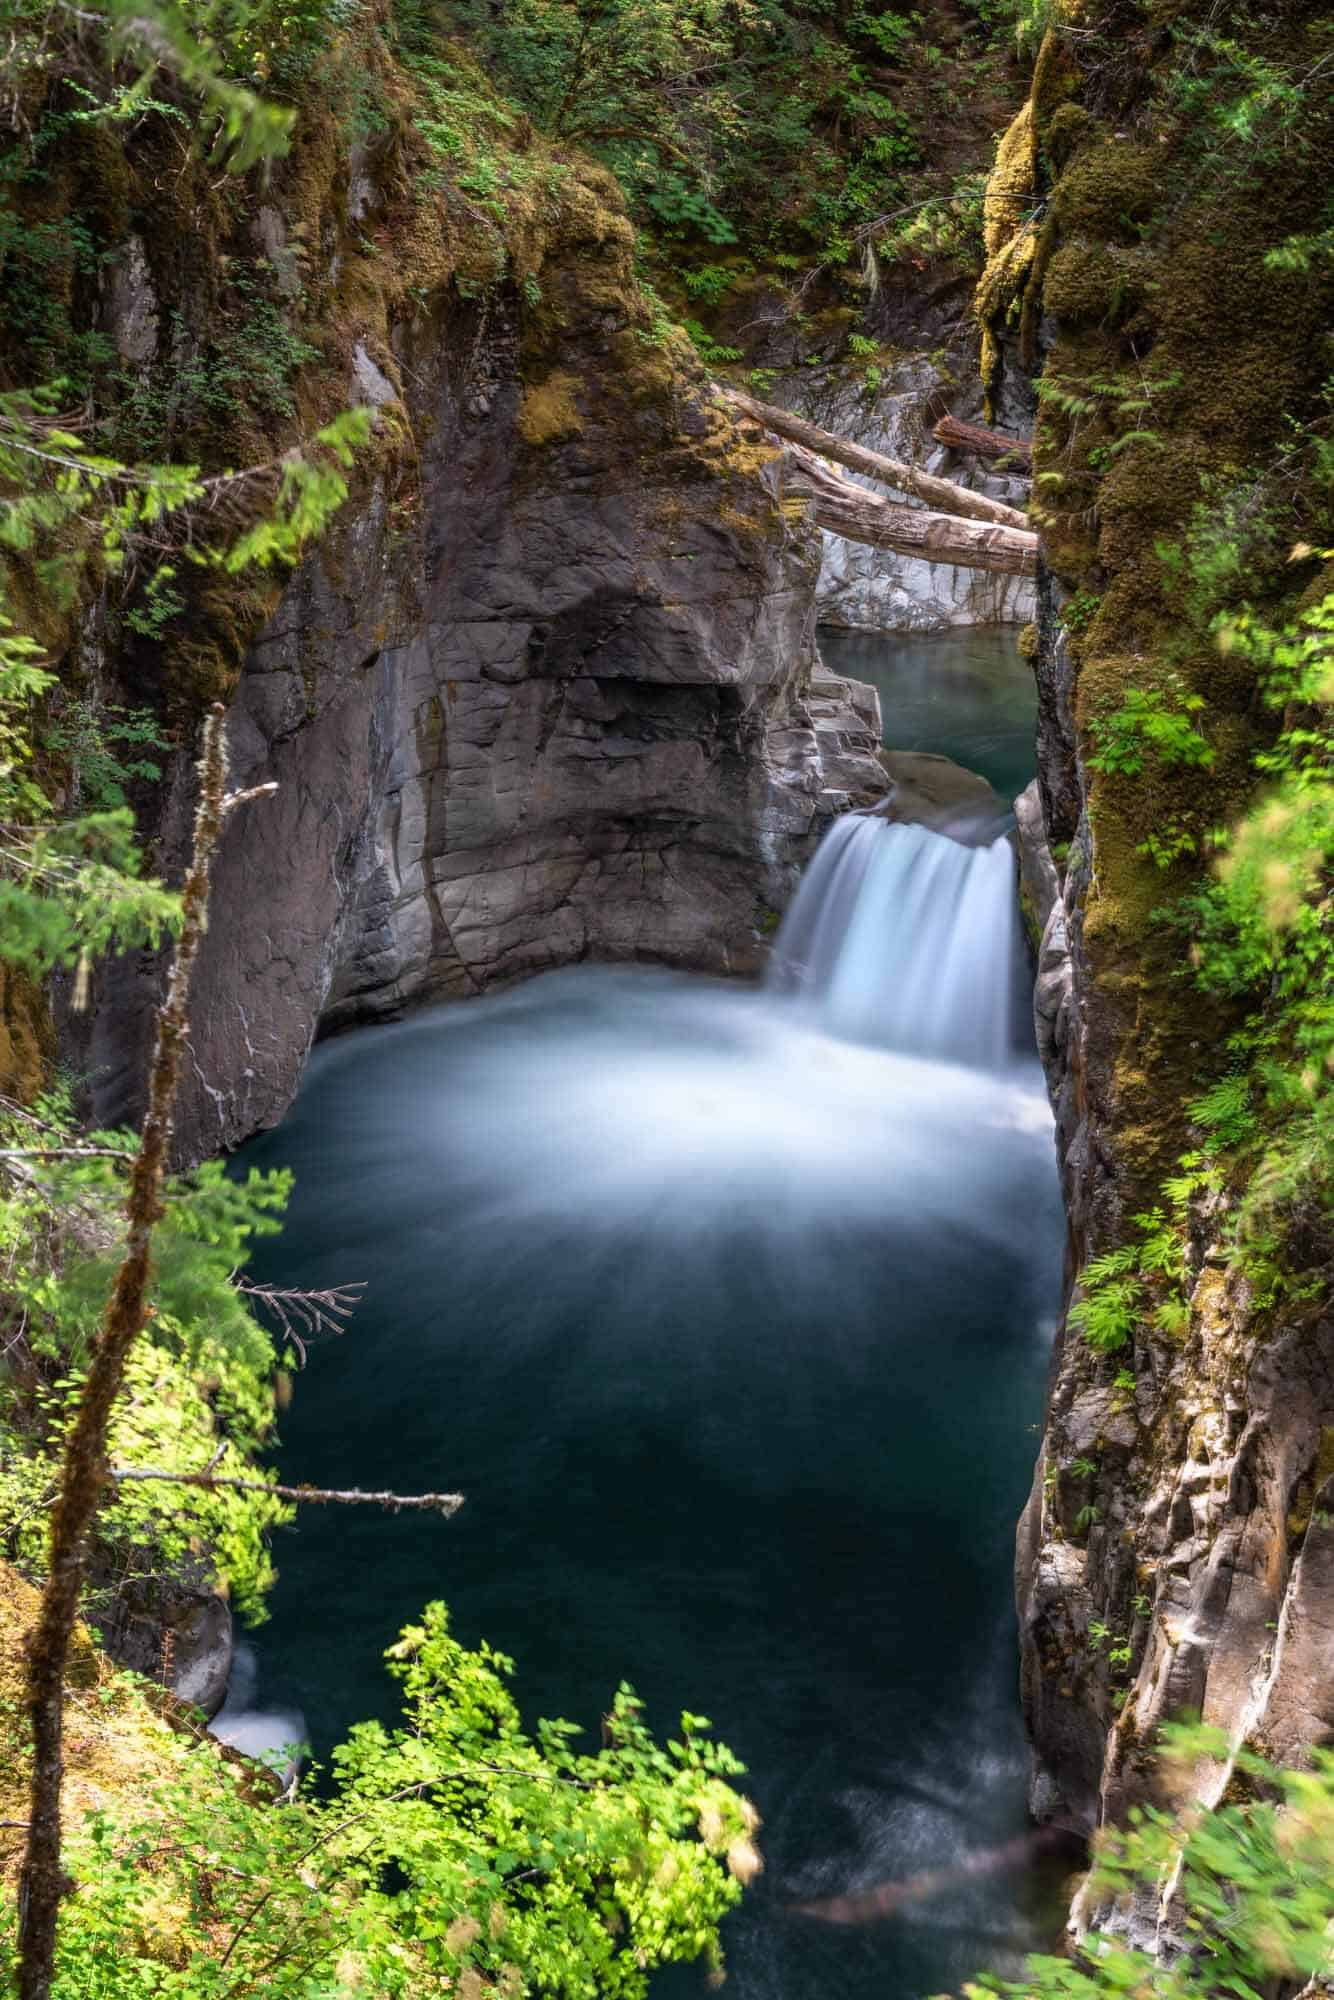 One of the many small cascades along the Little Qualicum Falls Loop